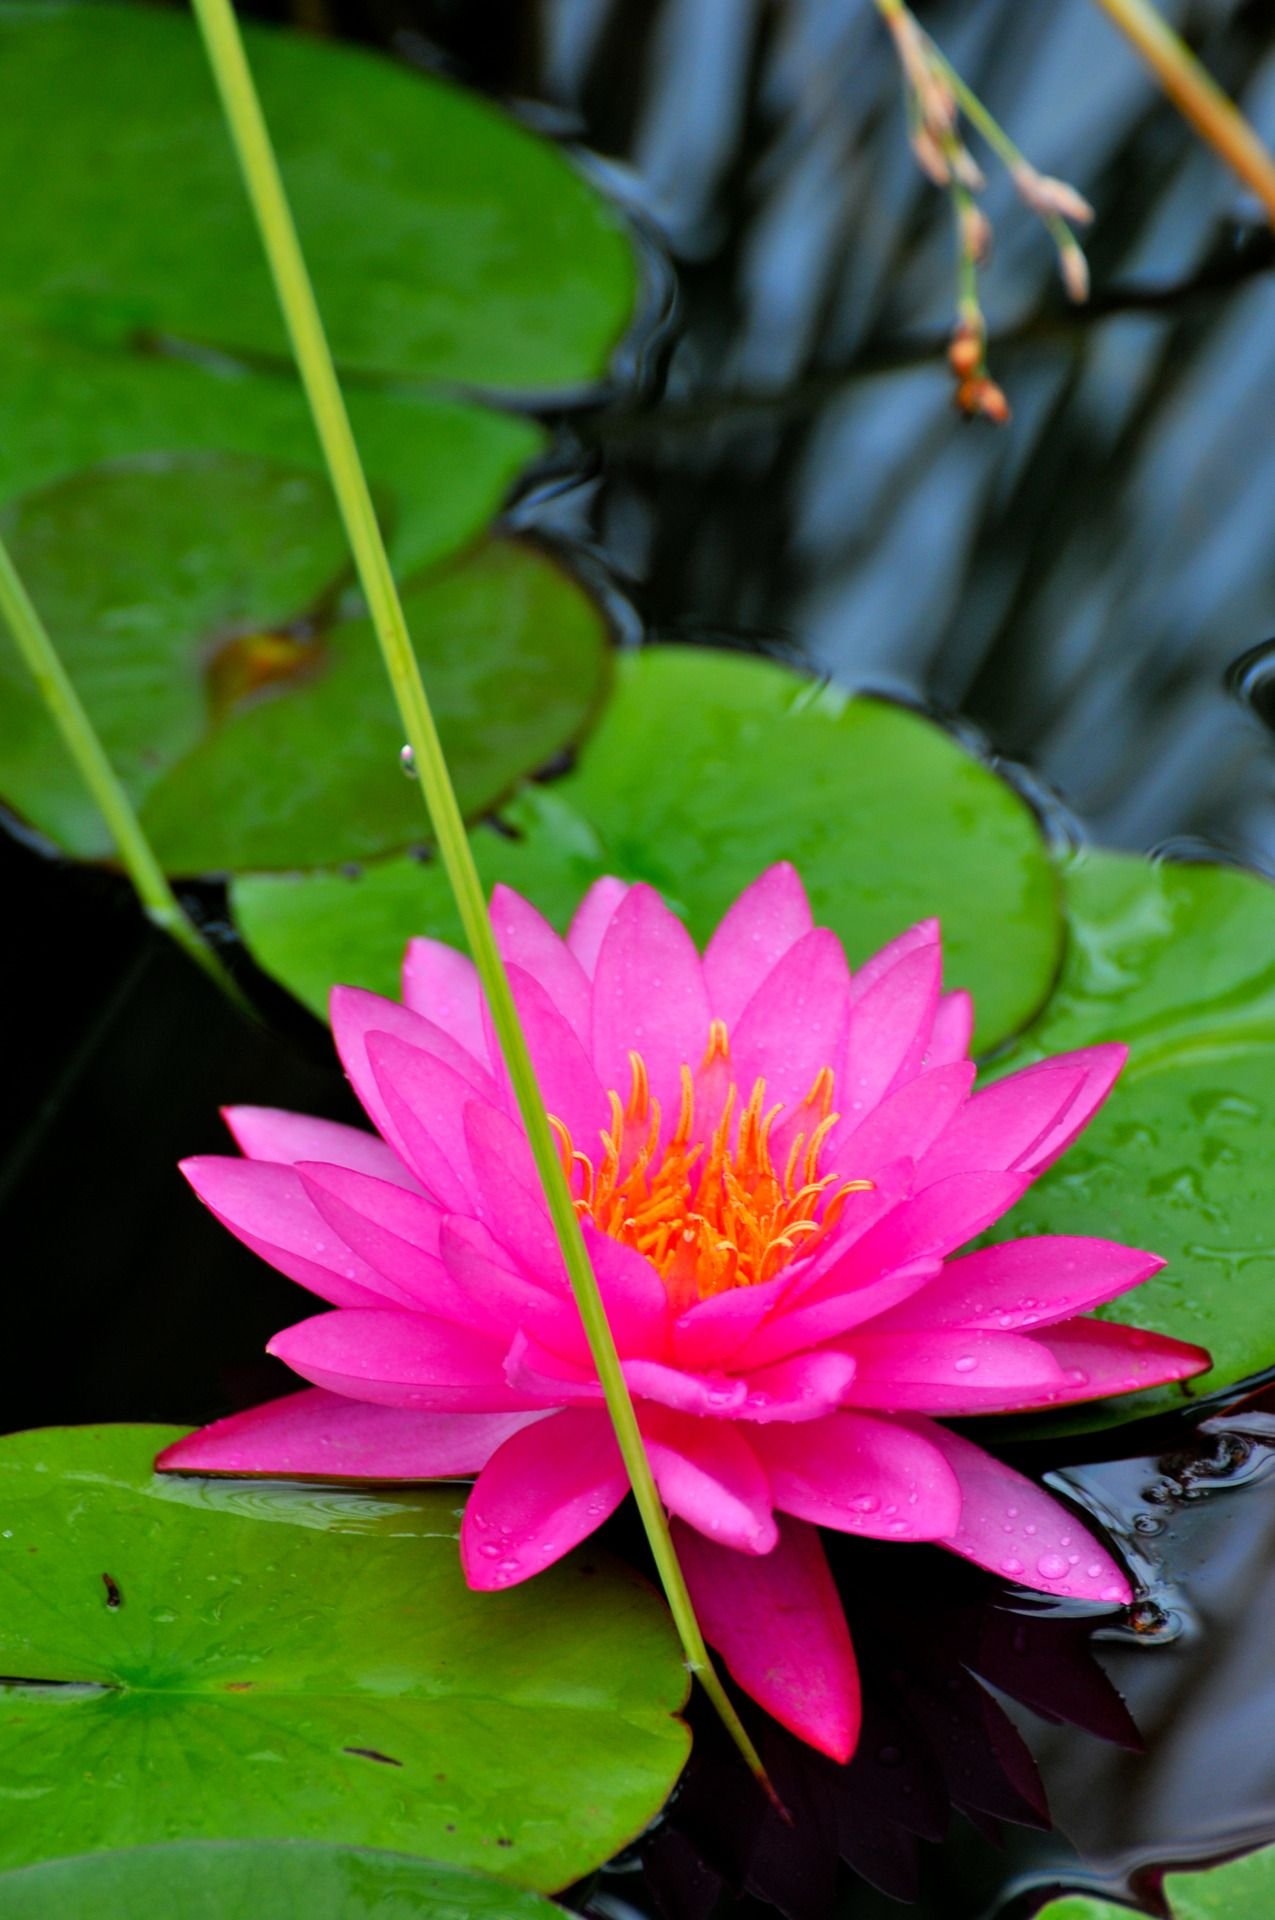 I need this color lily pad water lilies pinterest lotus i need this color lily pad izmirmasajfo